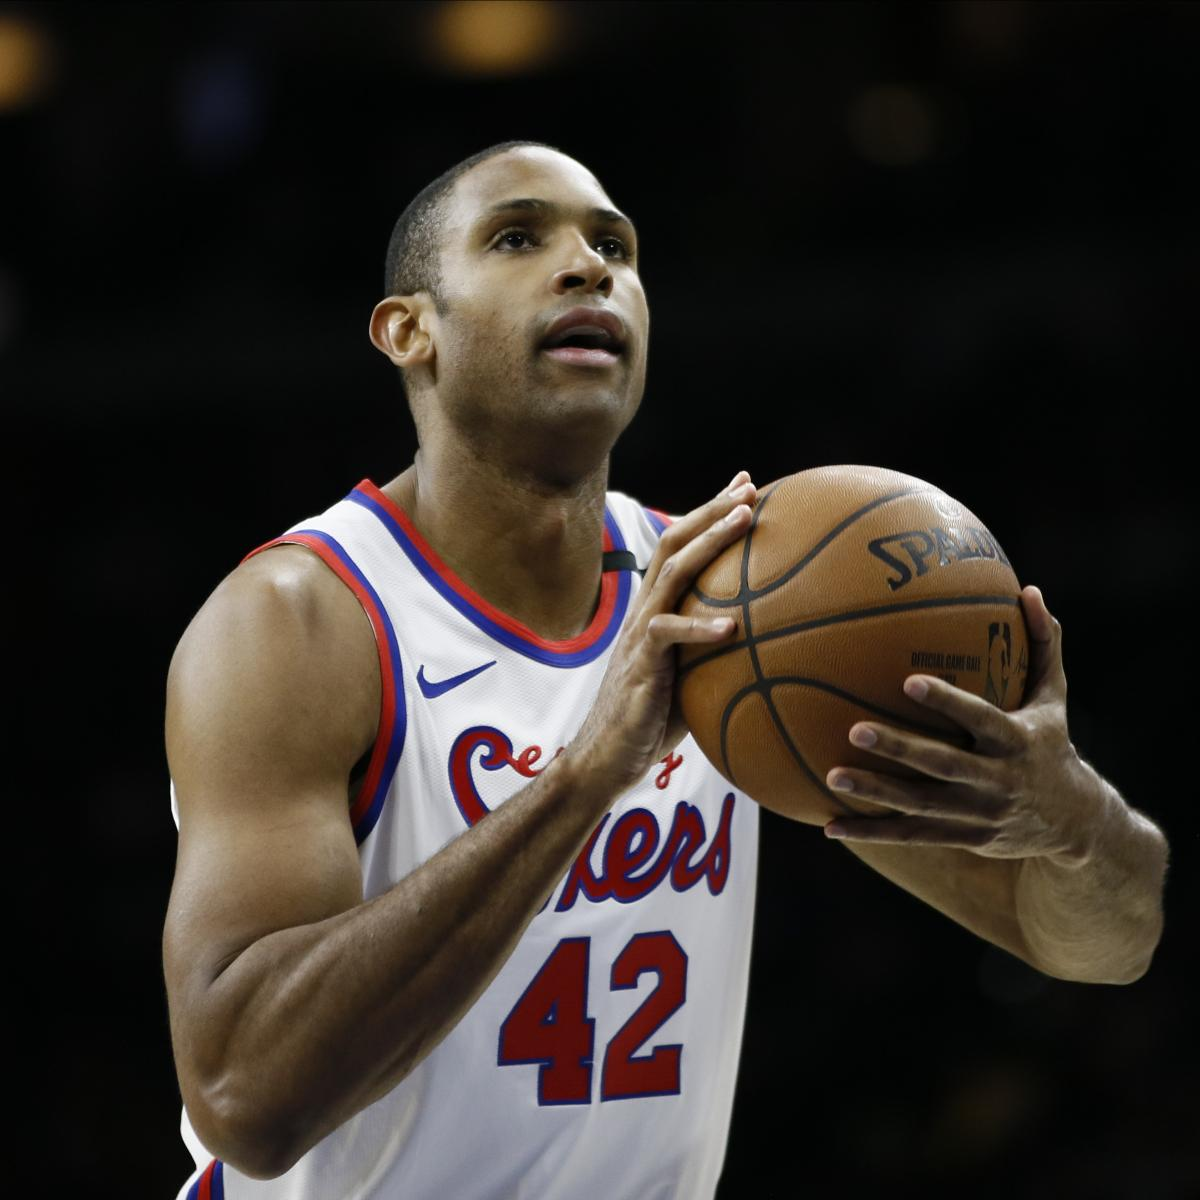 76ers' Brett Brown on Al Horford After Benching: 'I Want to Help Him Help Us'